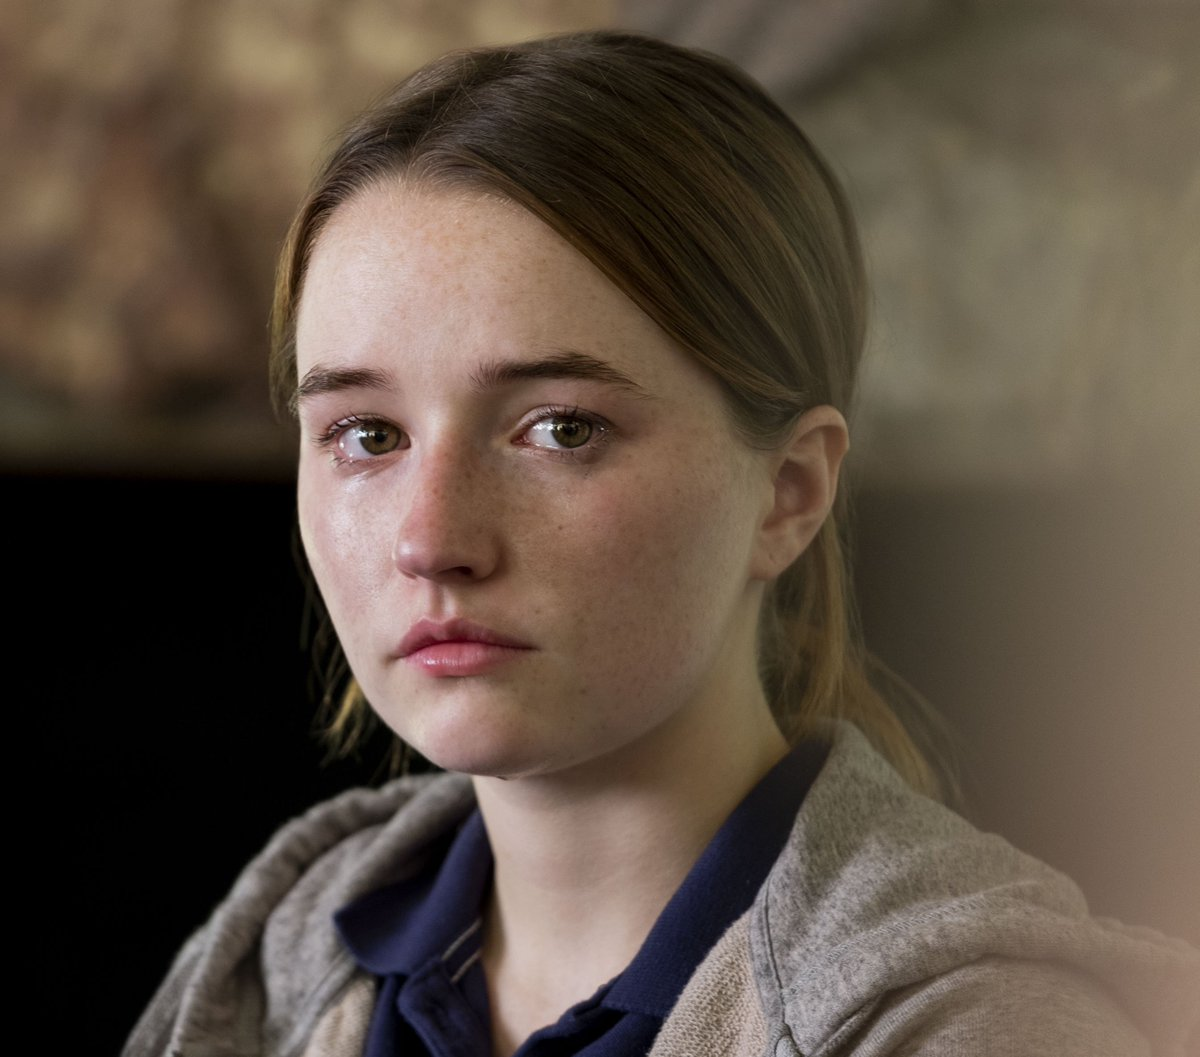 """Toni Collette, Merritt Wever, and Kaitlyn Dever star in """"Unbelievable,"""" a limited series inspired by the Pulitzer Prize winning article about two female detectives who are determined to solve a string of rapes that only they believe are connected."""